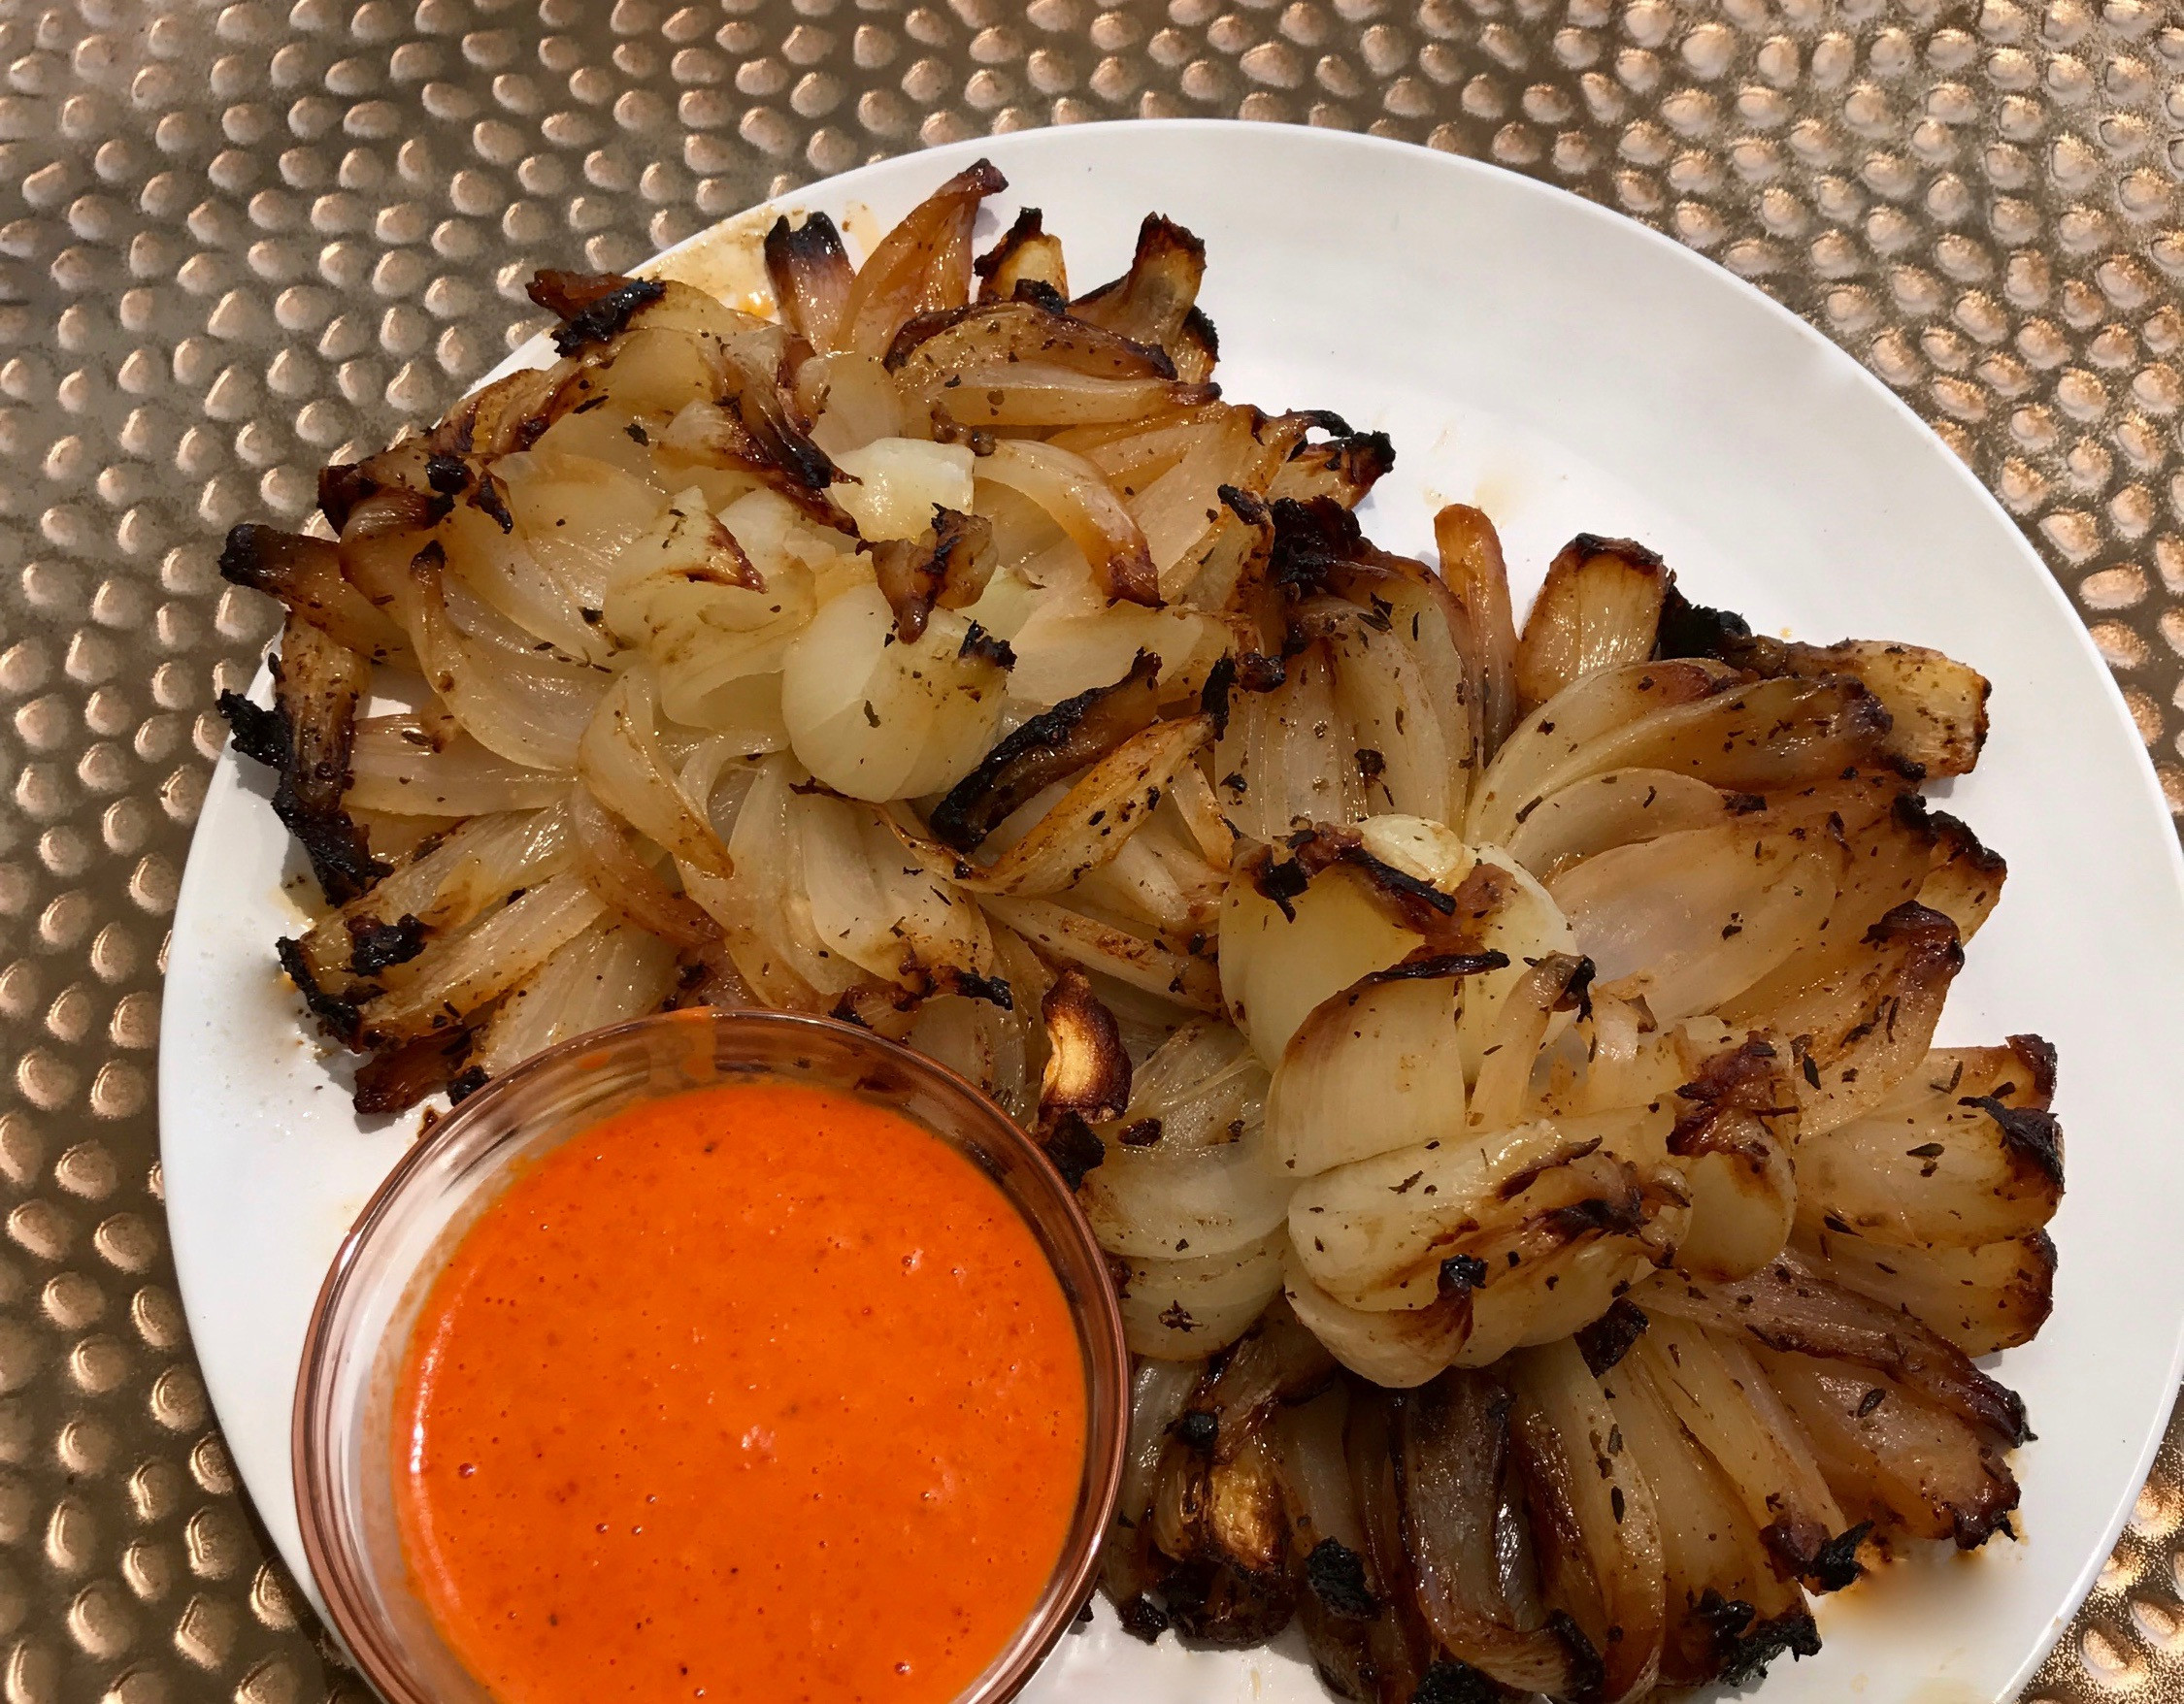 Bloomin Onion Sauce  Grilled Blooming ion with Roasted Red Pepper Aioli Sauce